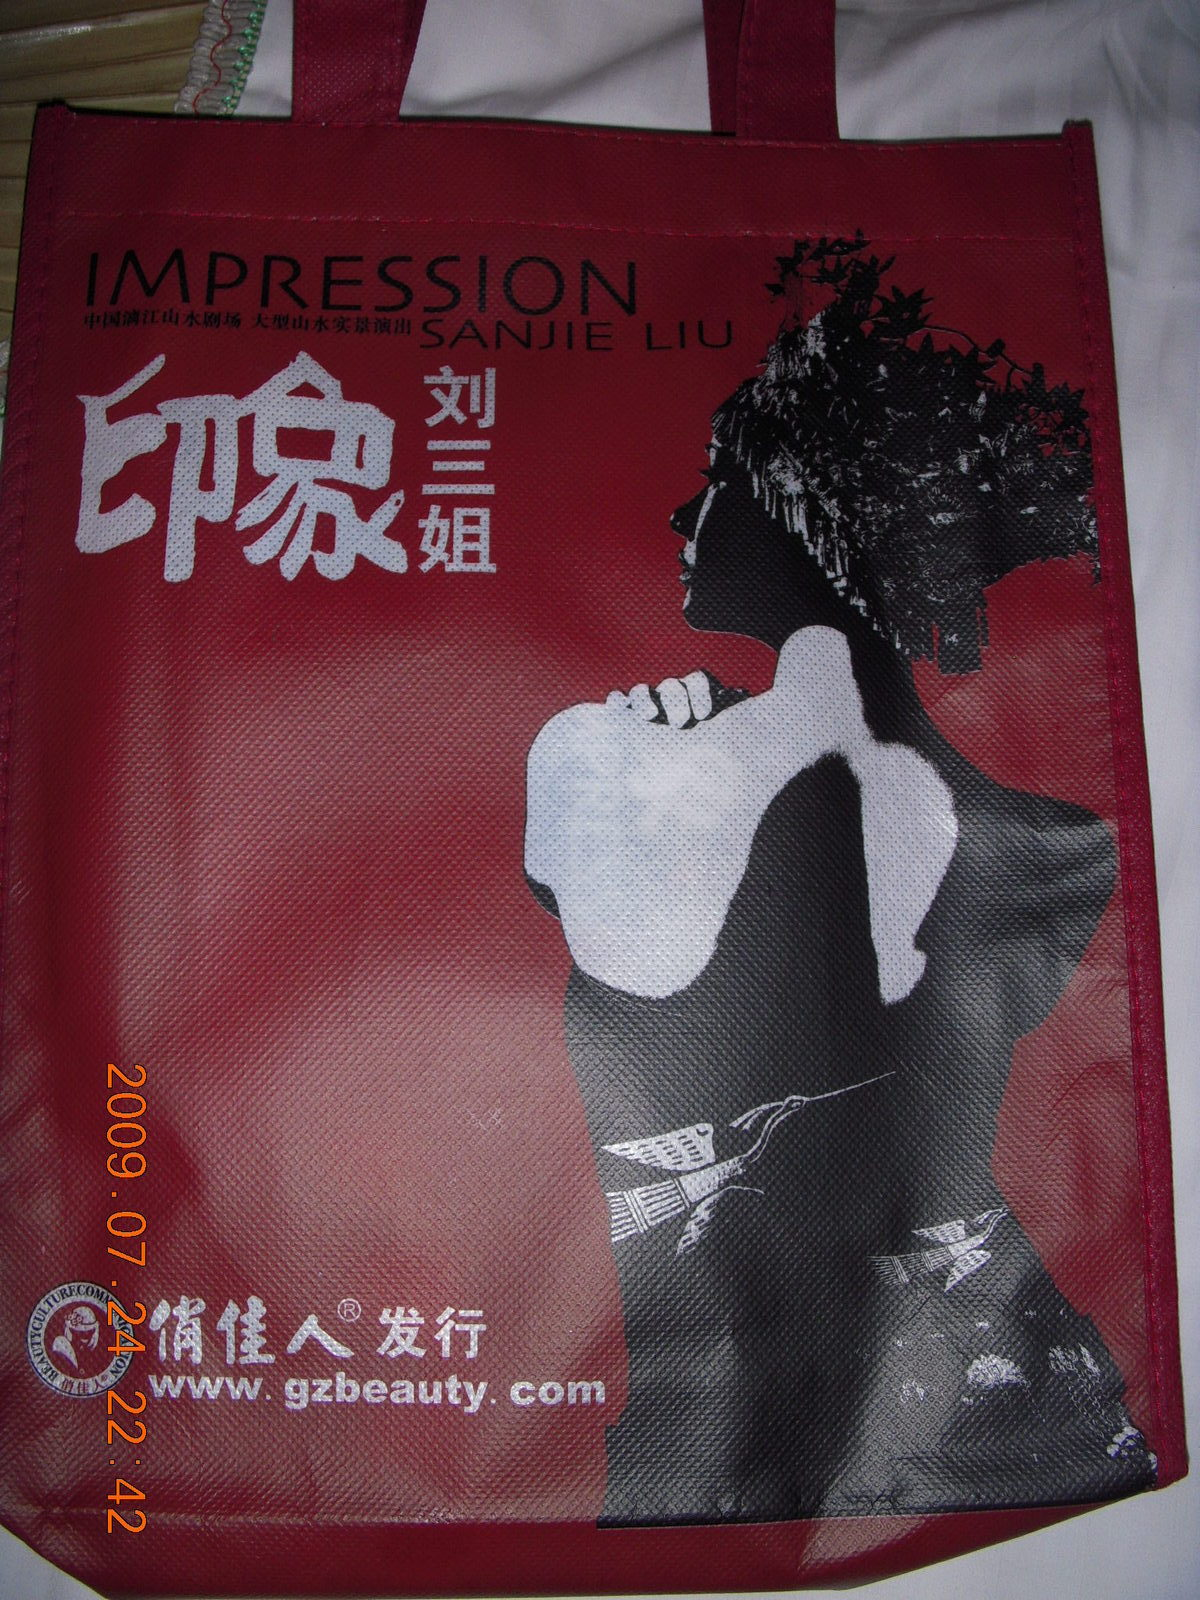 China eclipse - Yangshuo - Impression night show - bag for DVD/CD set